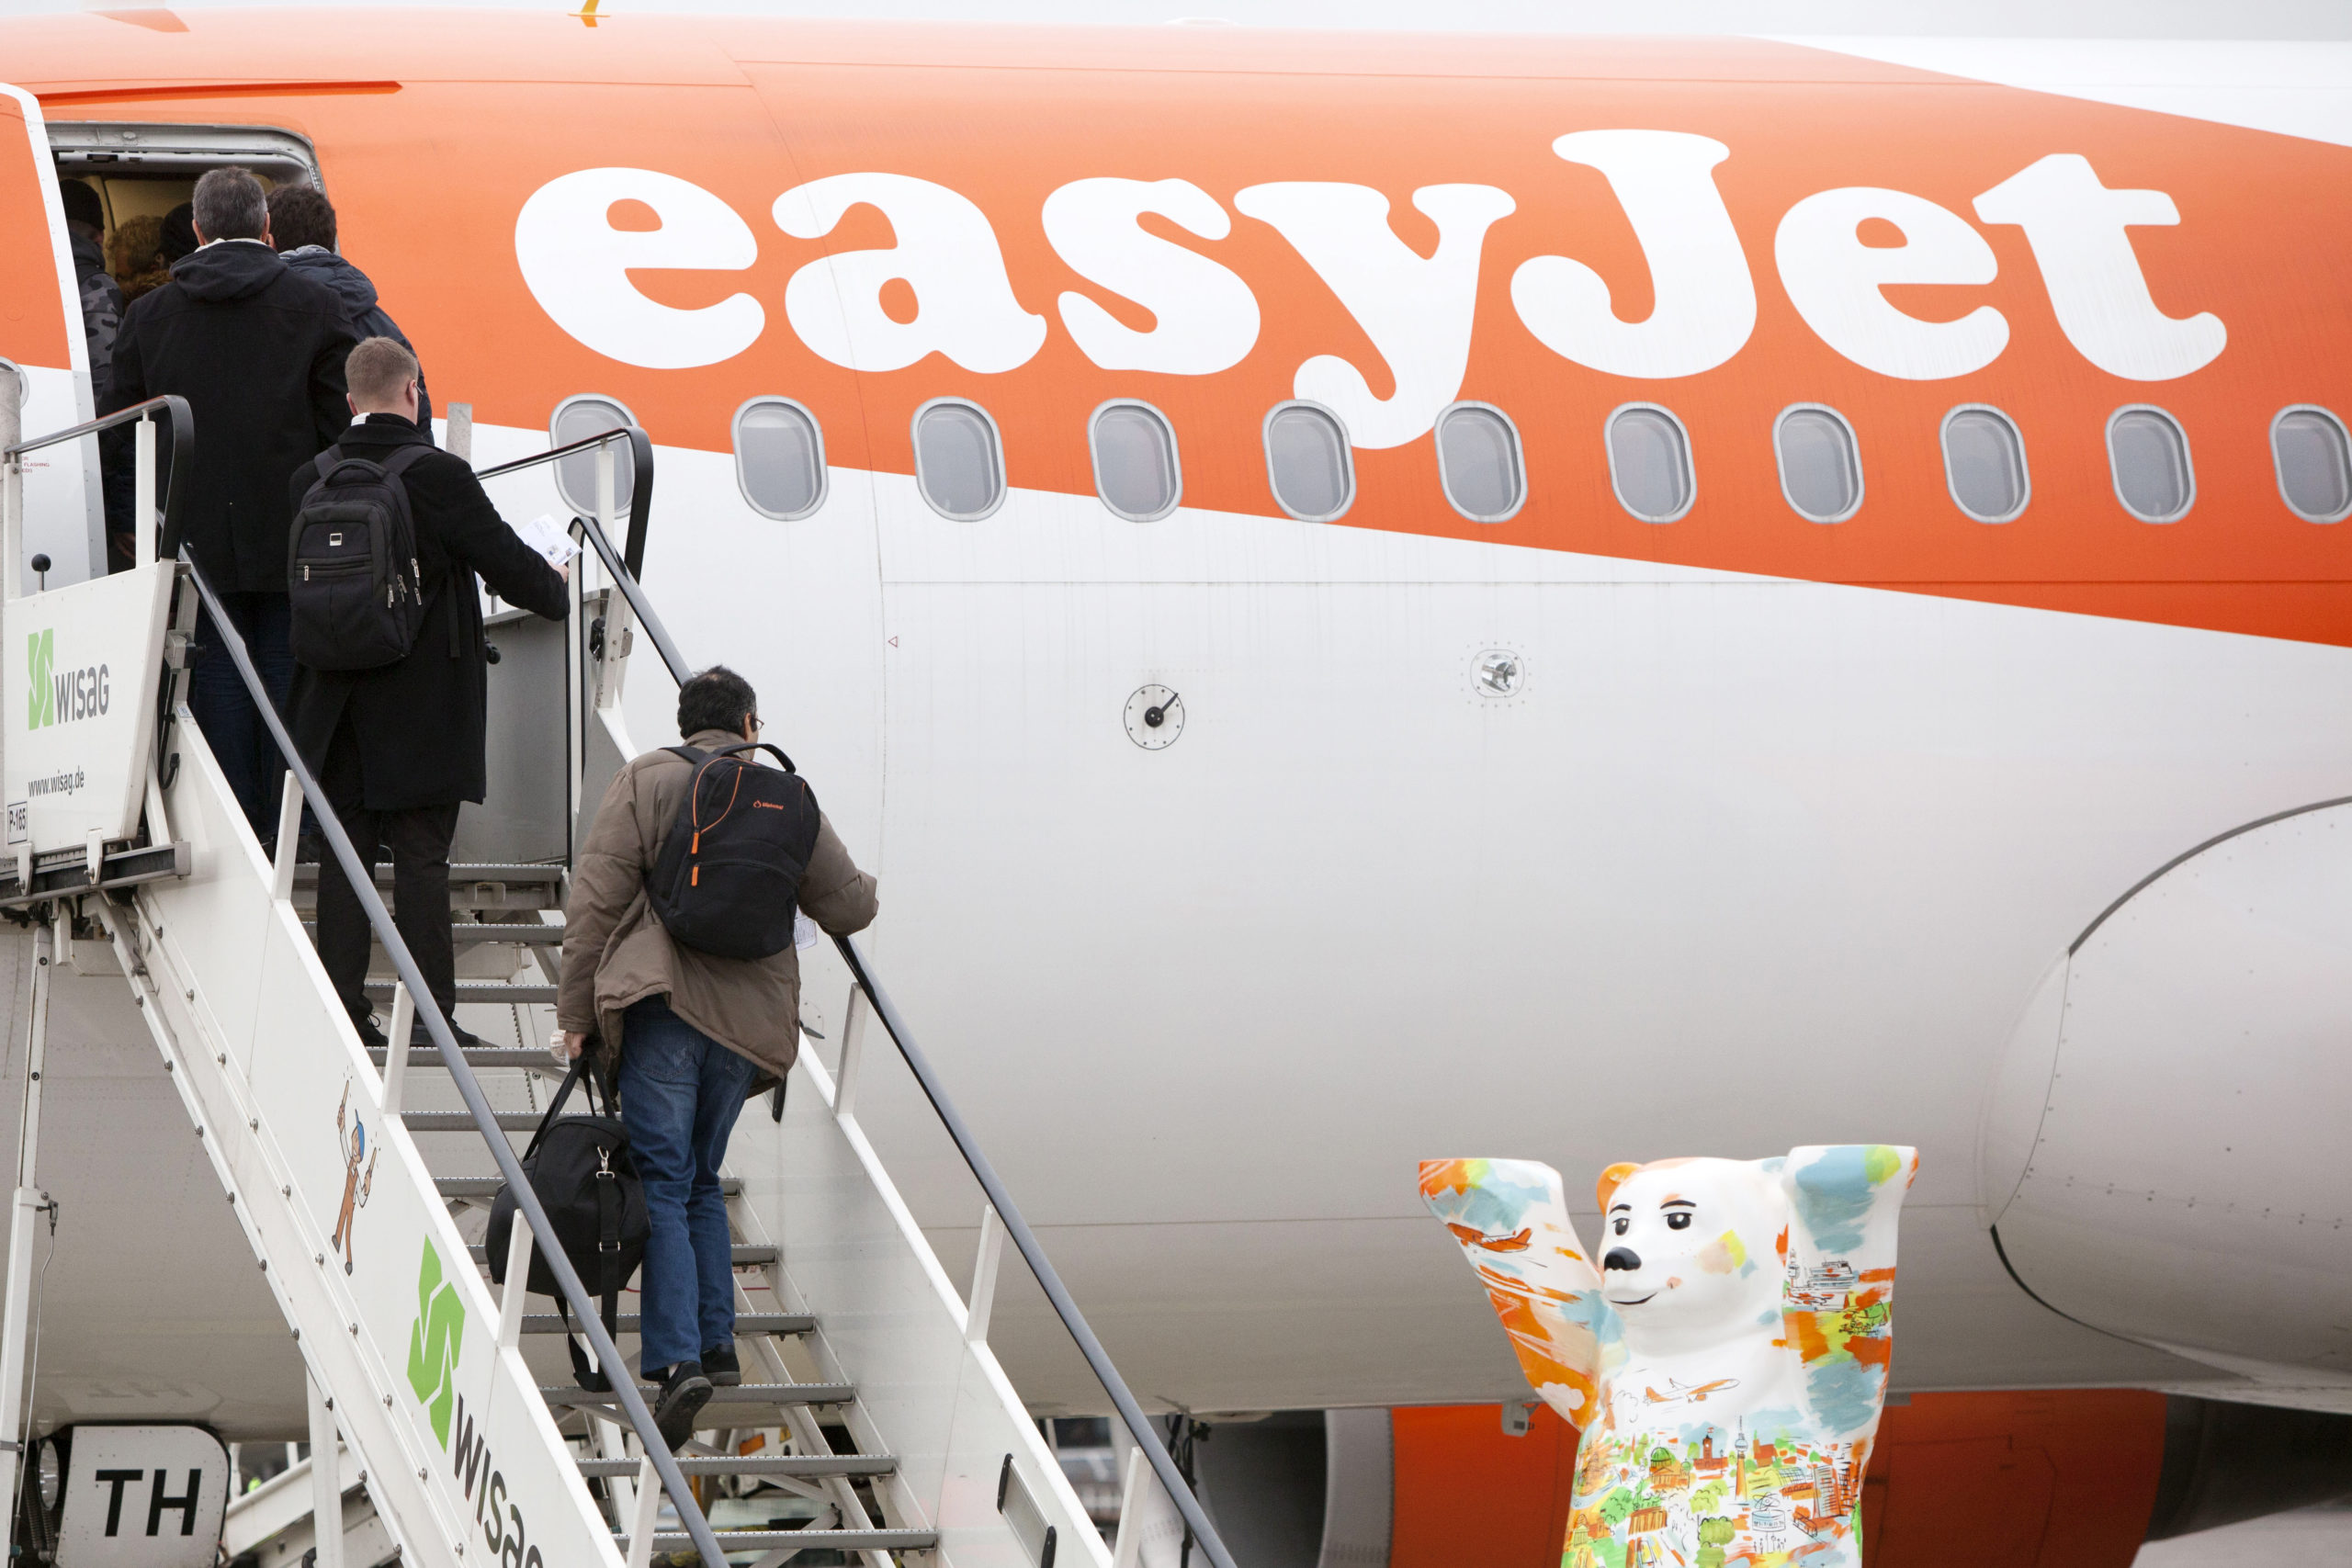 Un officier de police regarde un avion EasyJet.